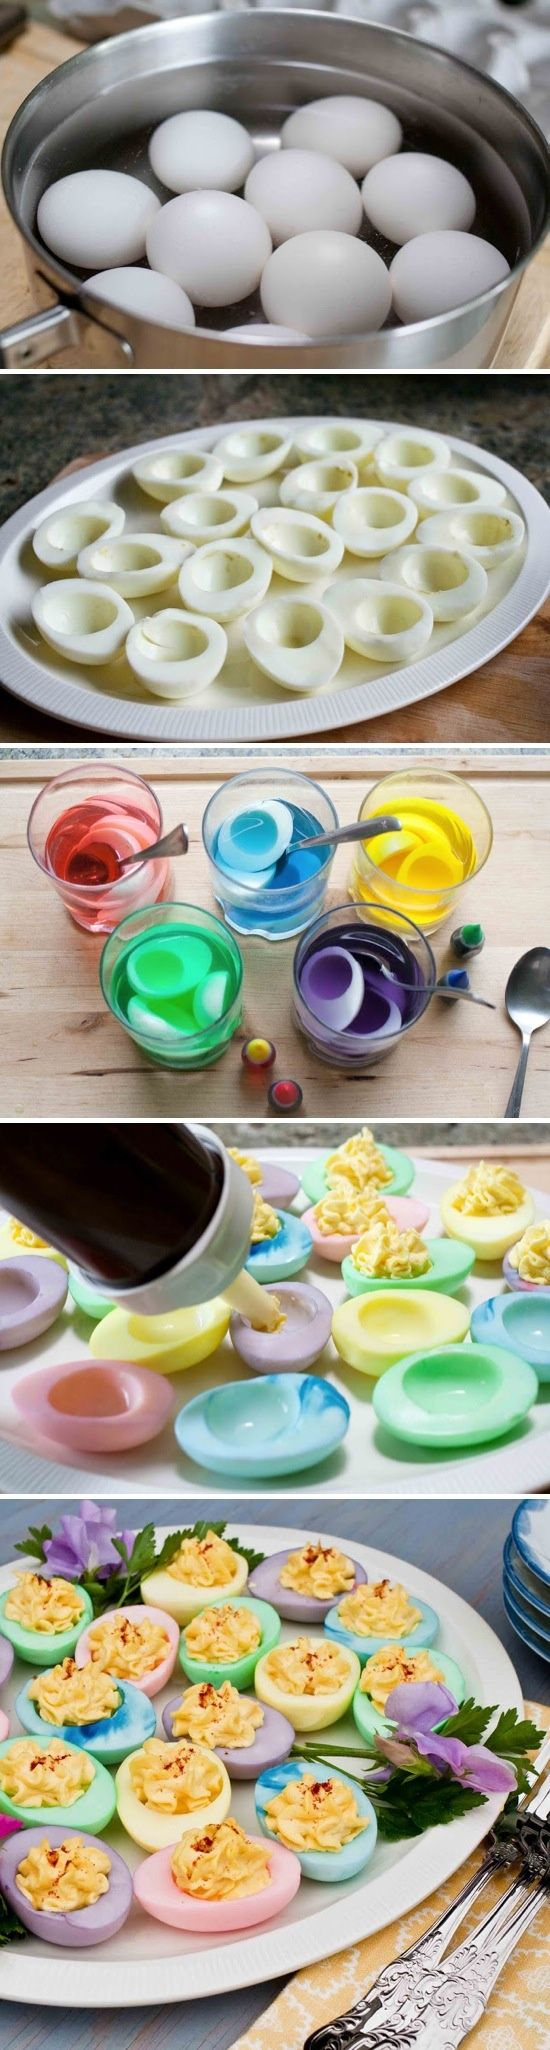 Colored/Easter deviled eggs